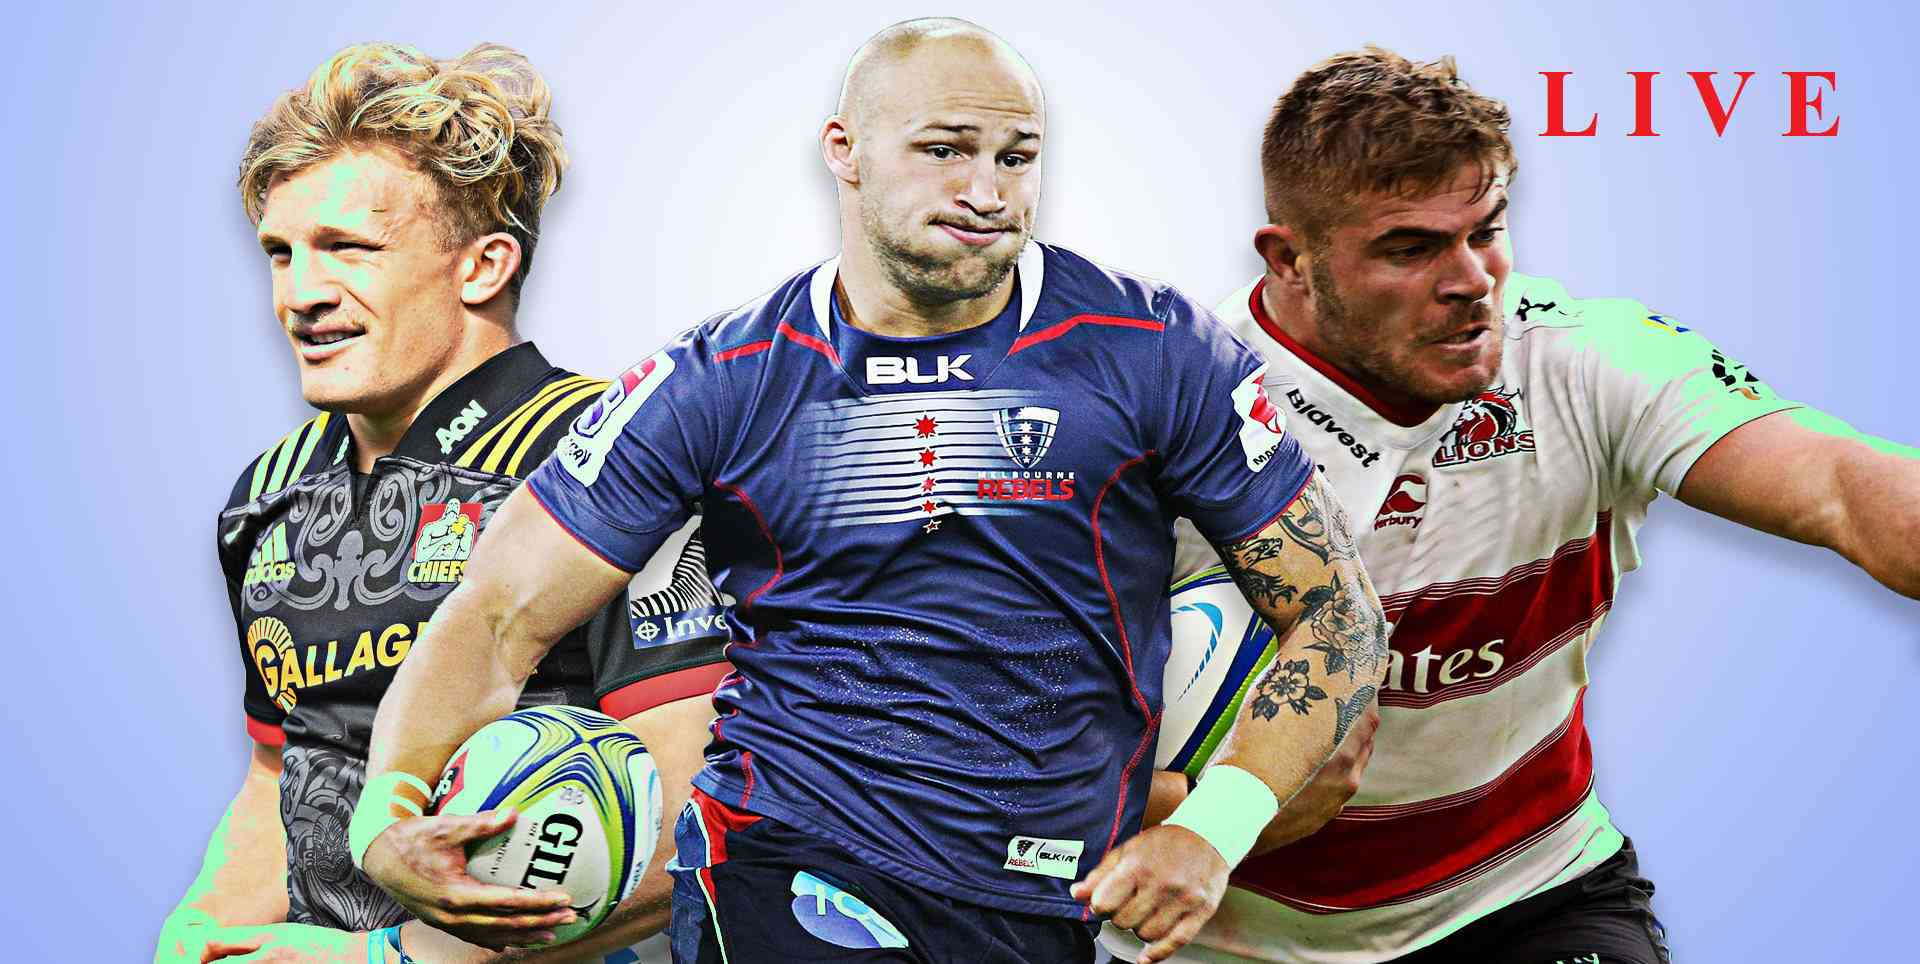 brumbies-vs-force-rugby-live-stream